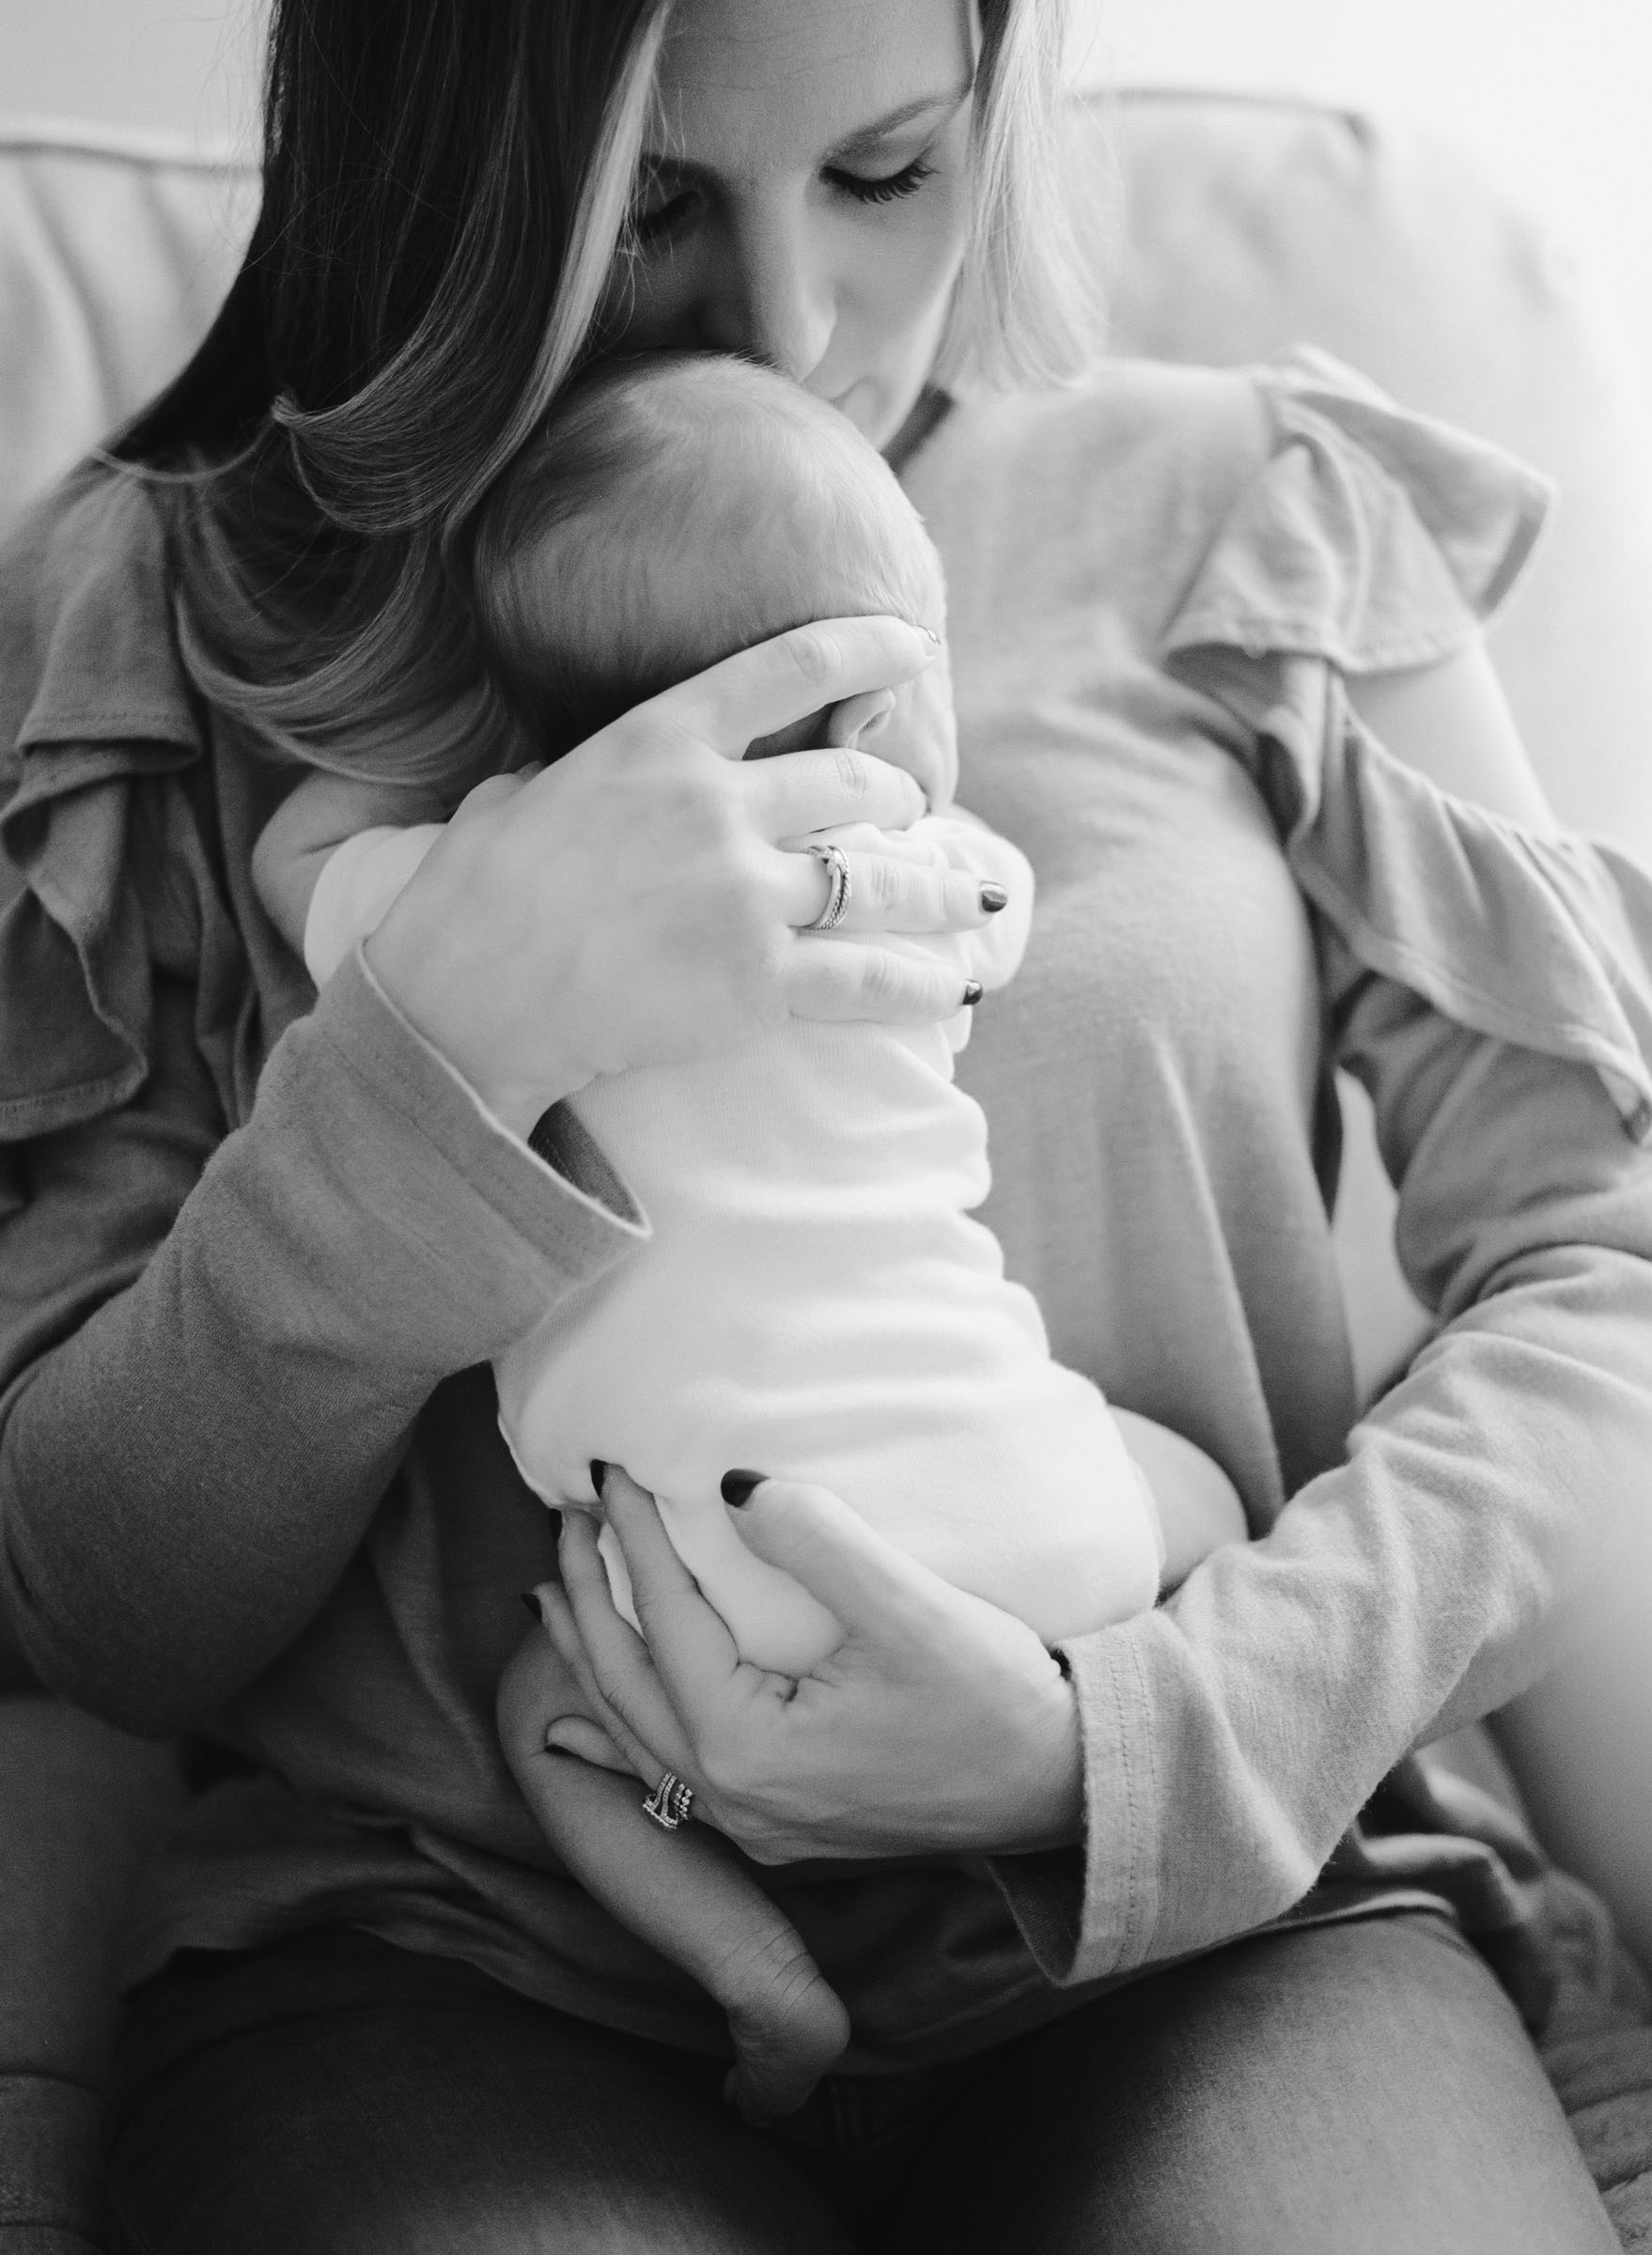 raleigh-baby-newborn-photography-film-home-session-014